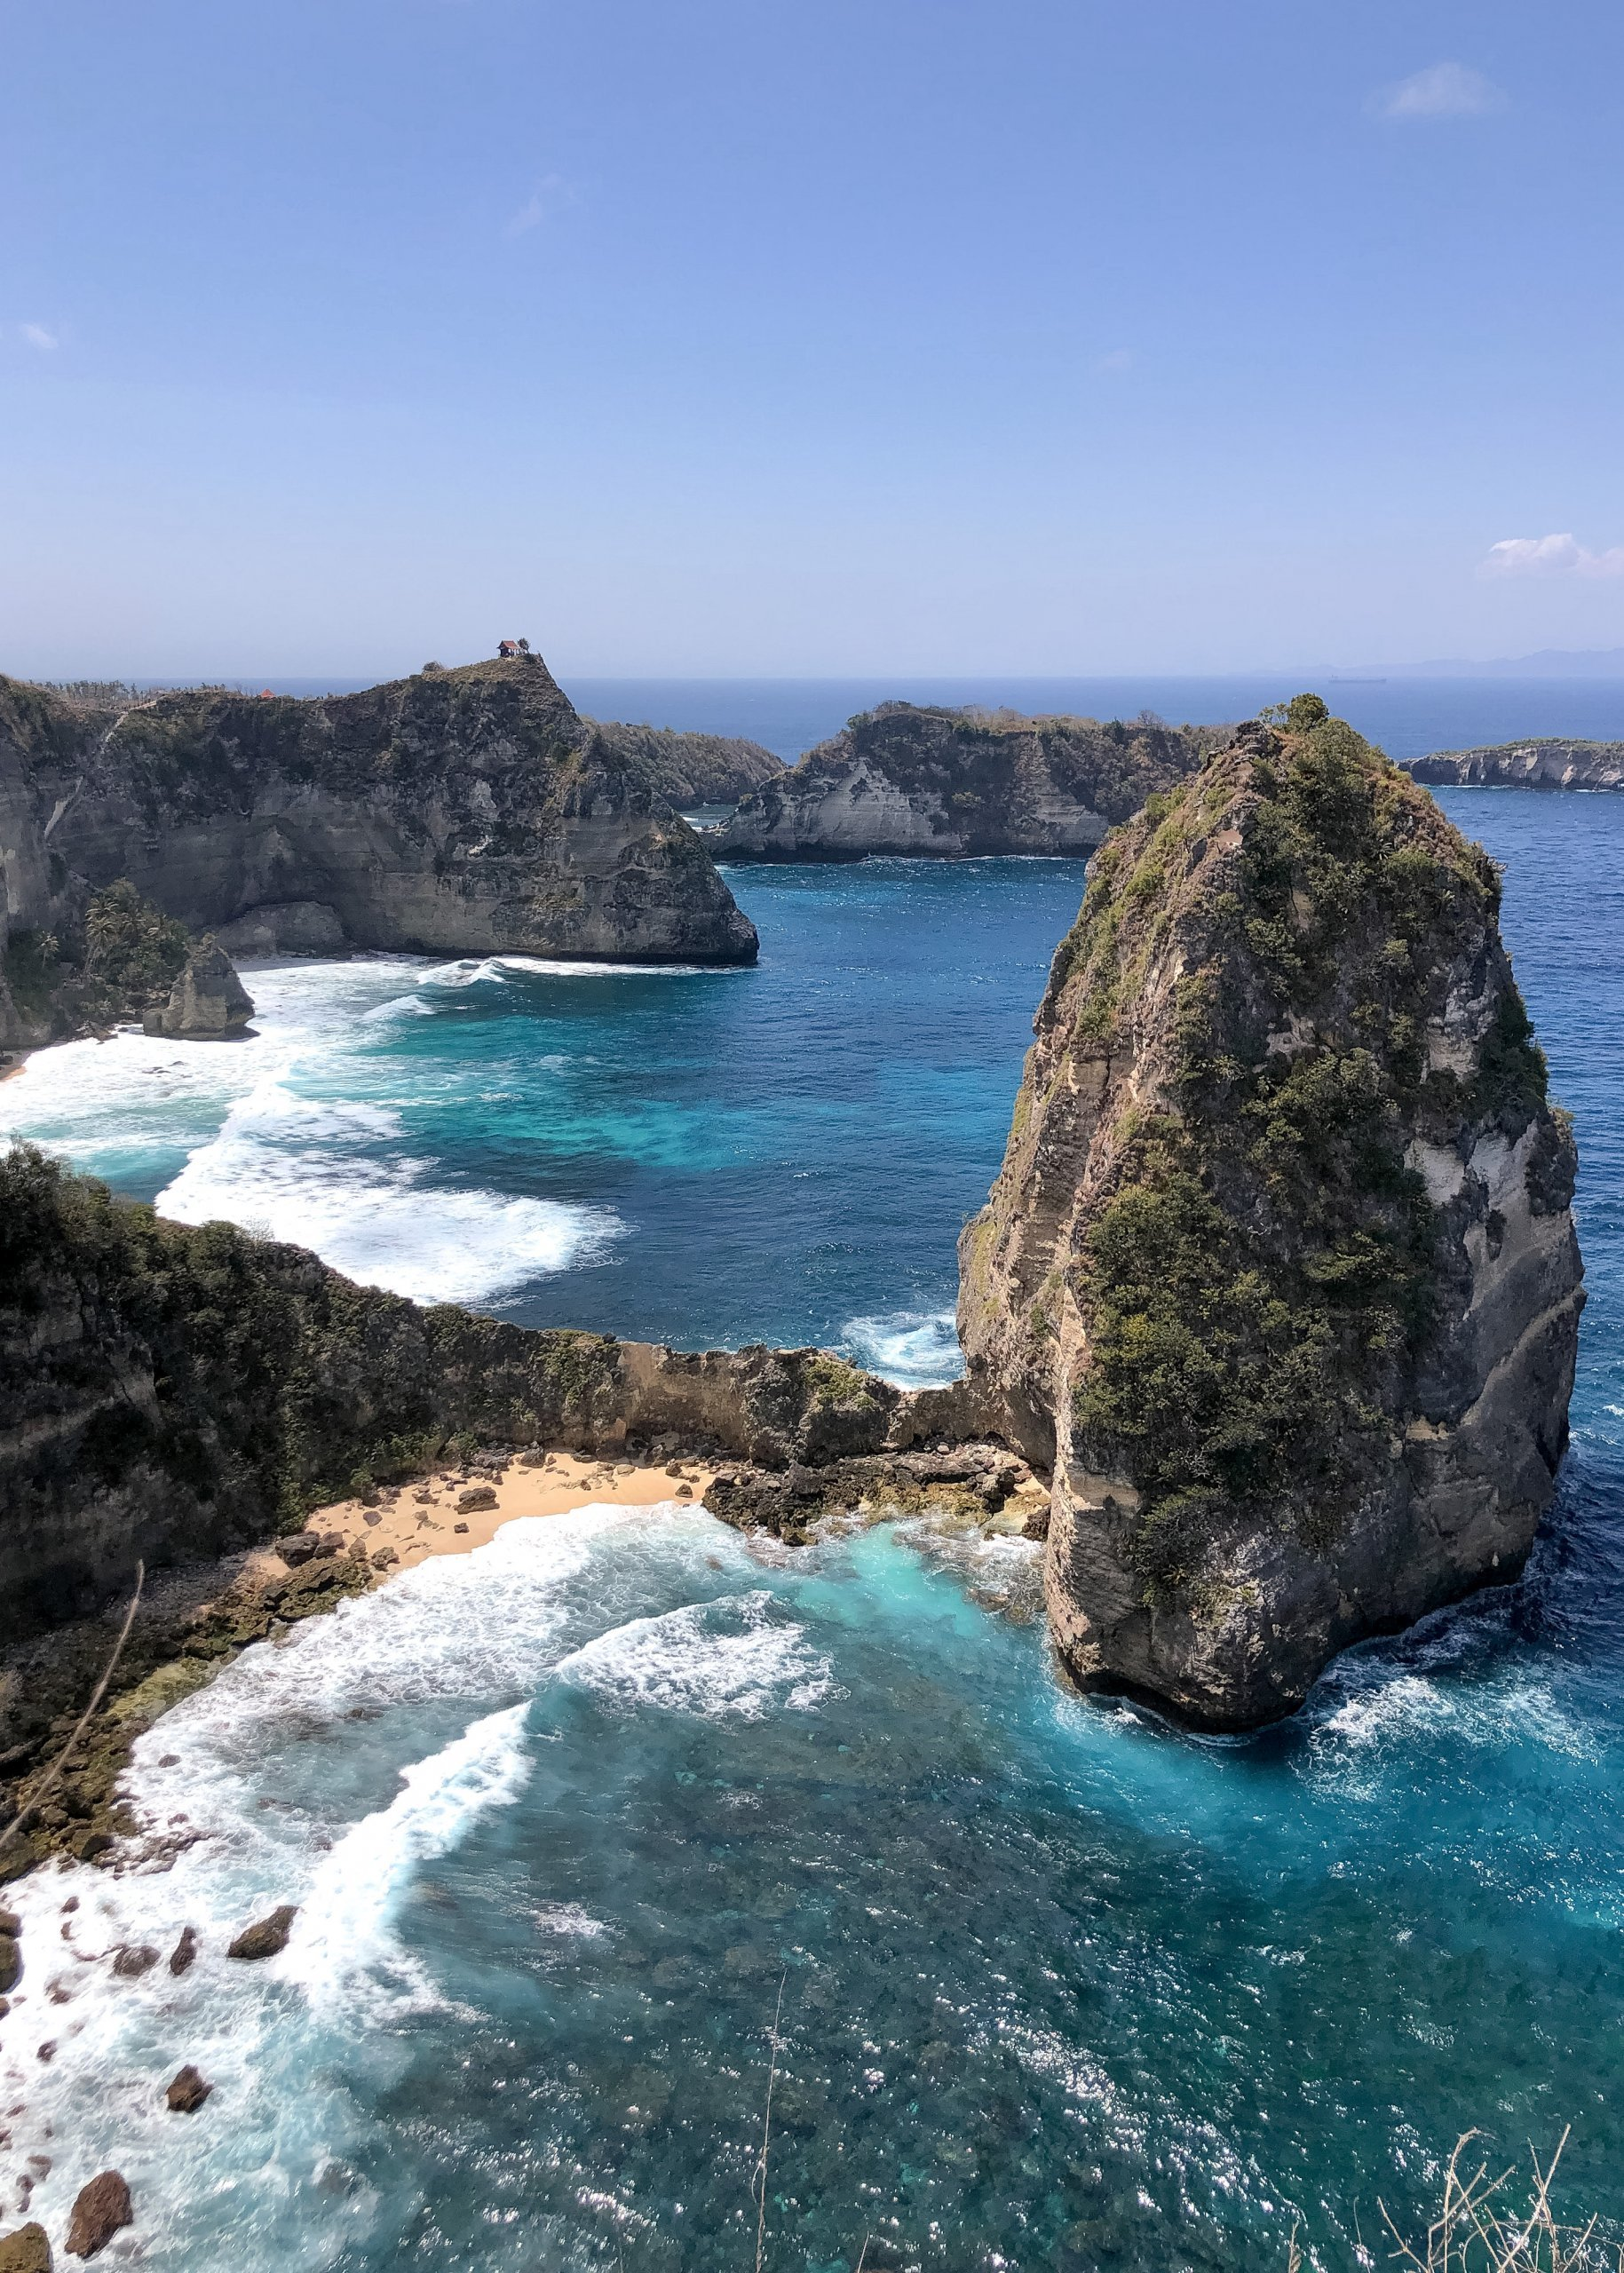 View of Diamond Beach Bali from by the treehouse on Nusa Penida